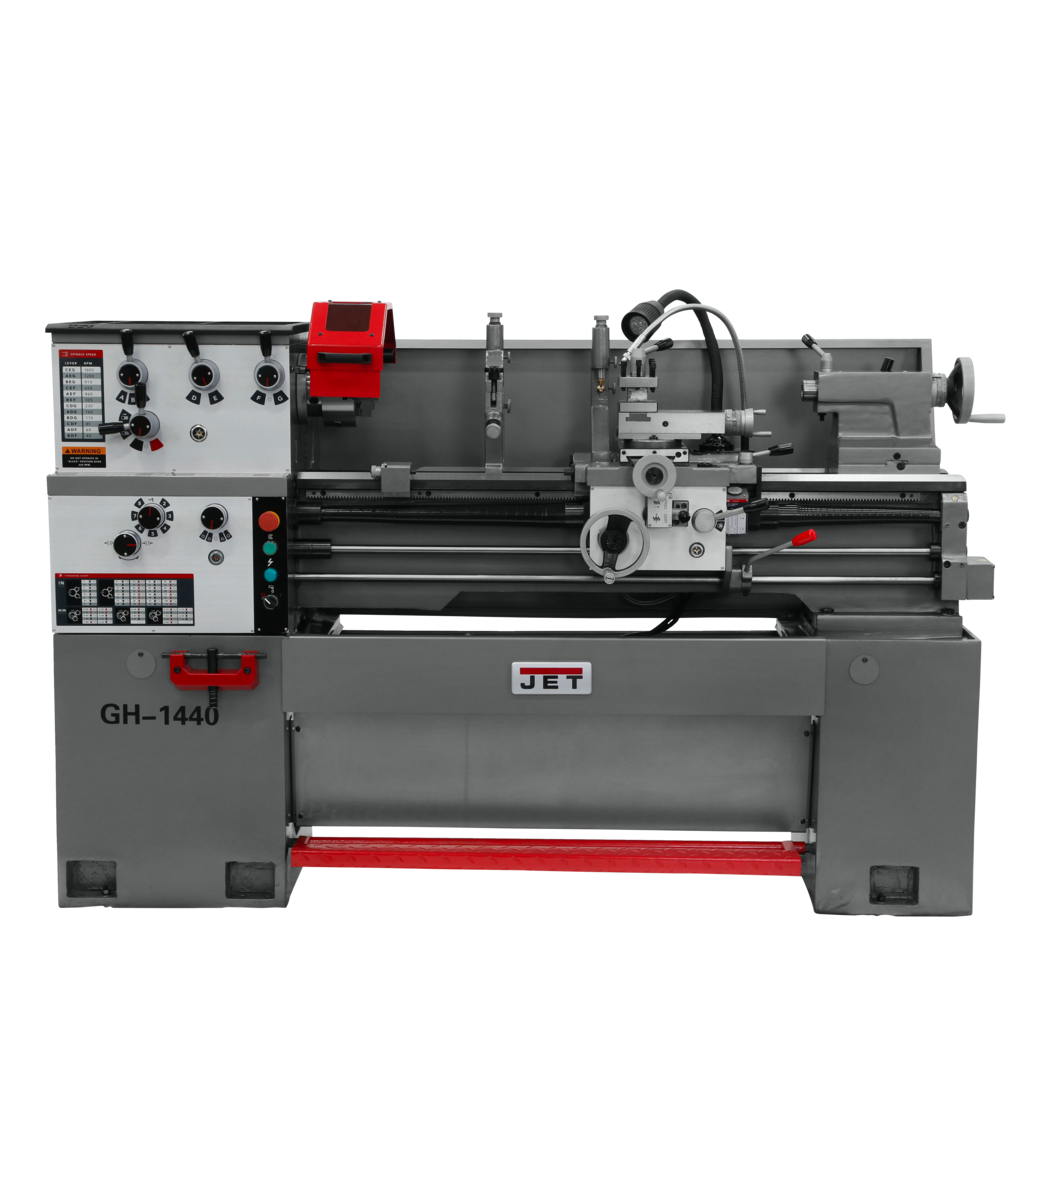 GH-1440-1  LATHE  WITH 203 DRO